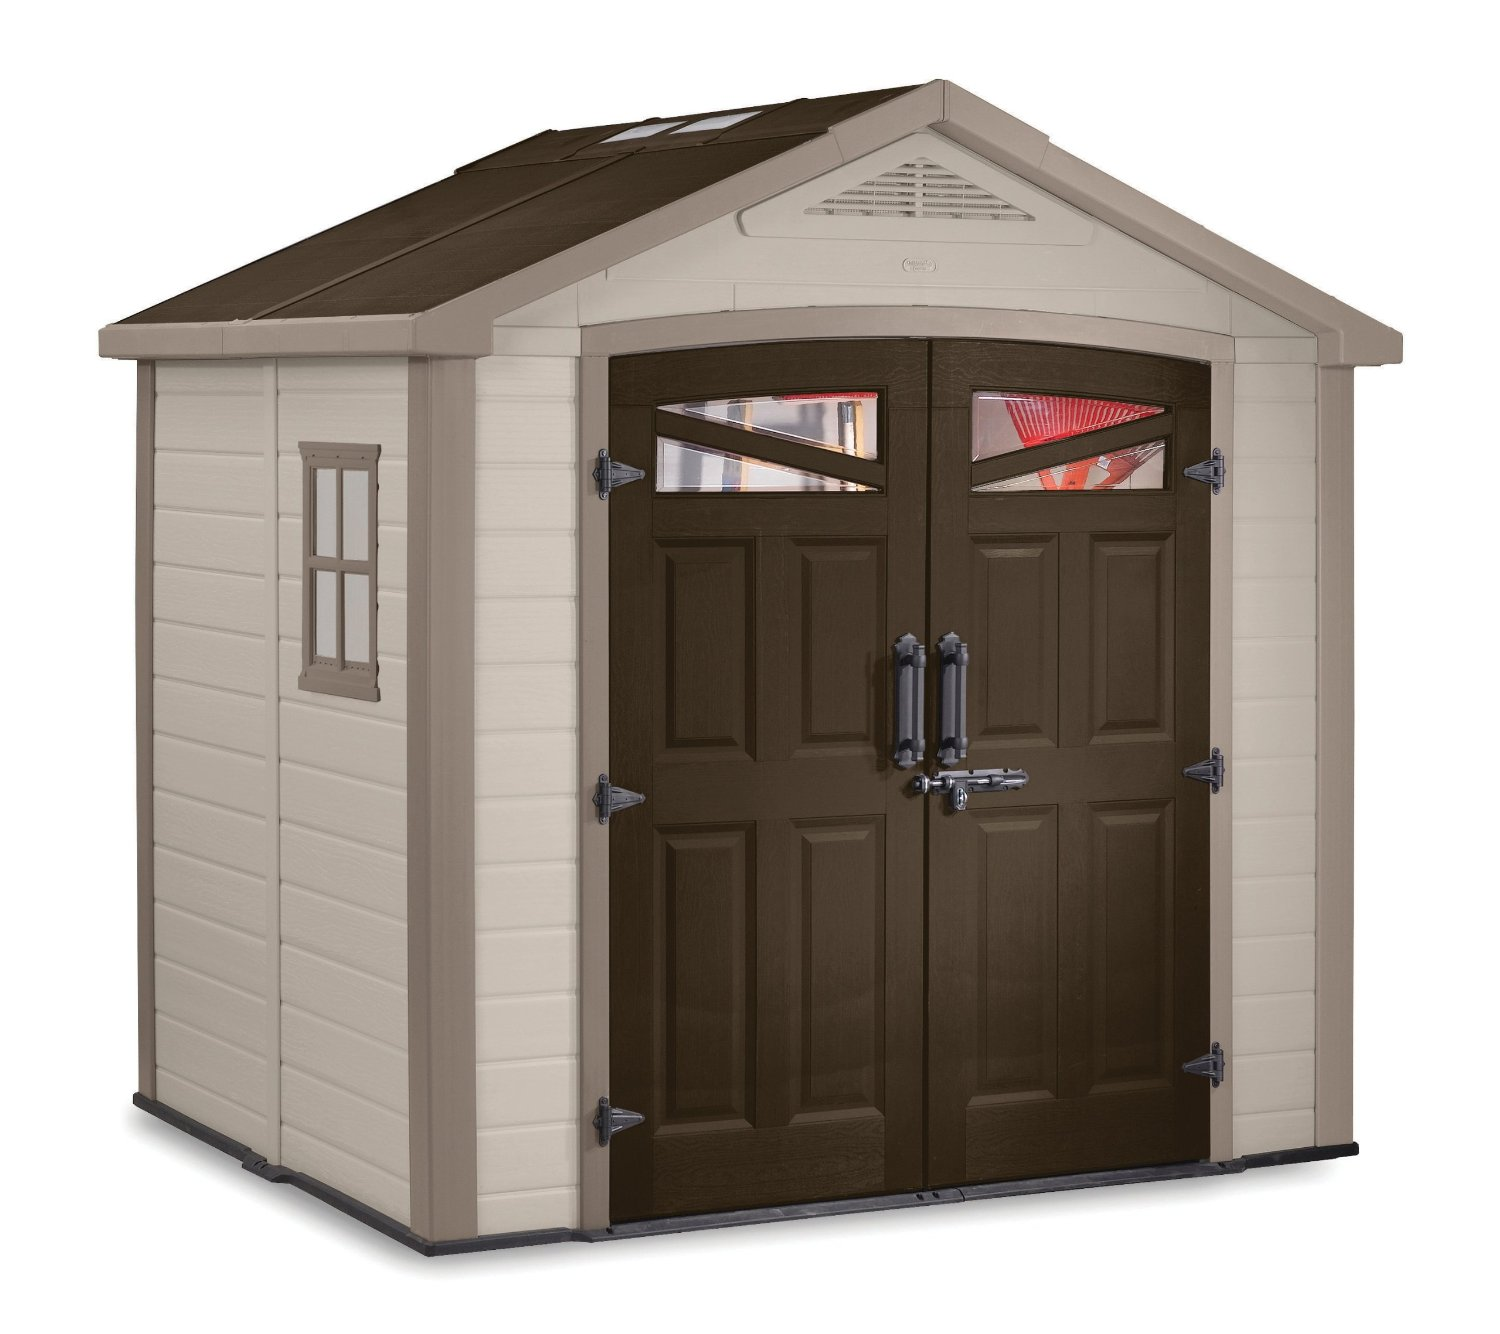 Keter 8x6 Bellevue Storage Shed